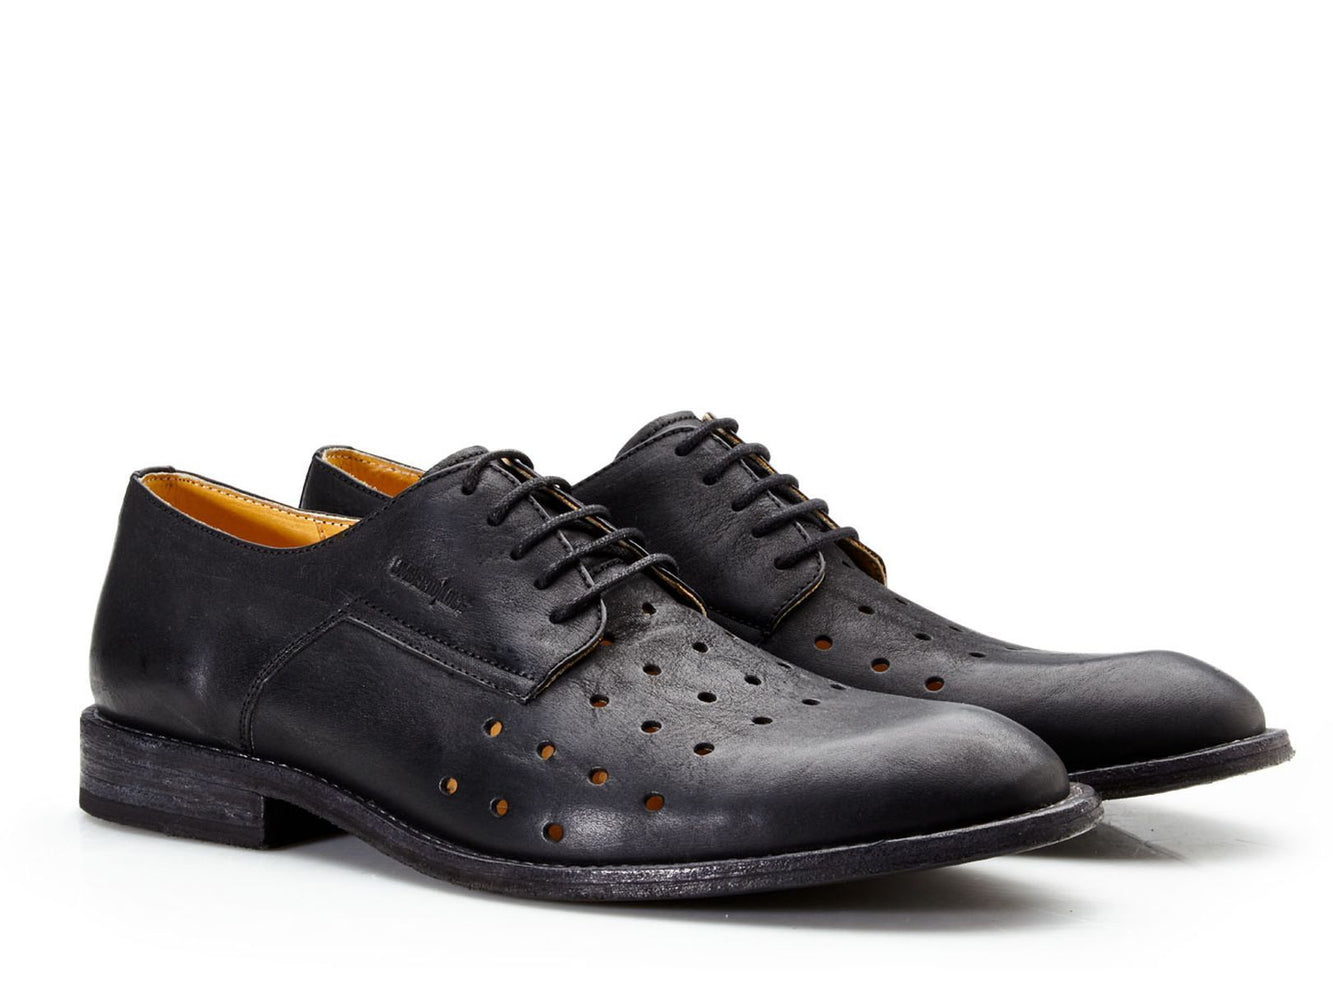 Richards Shoes By Umberto Luce